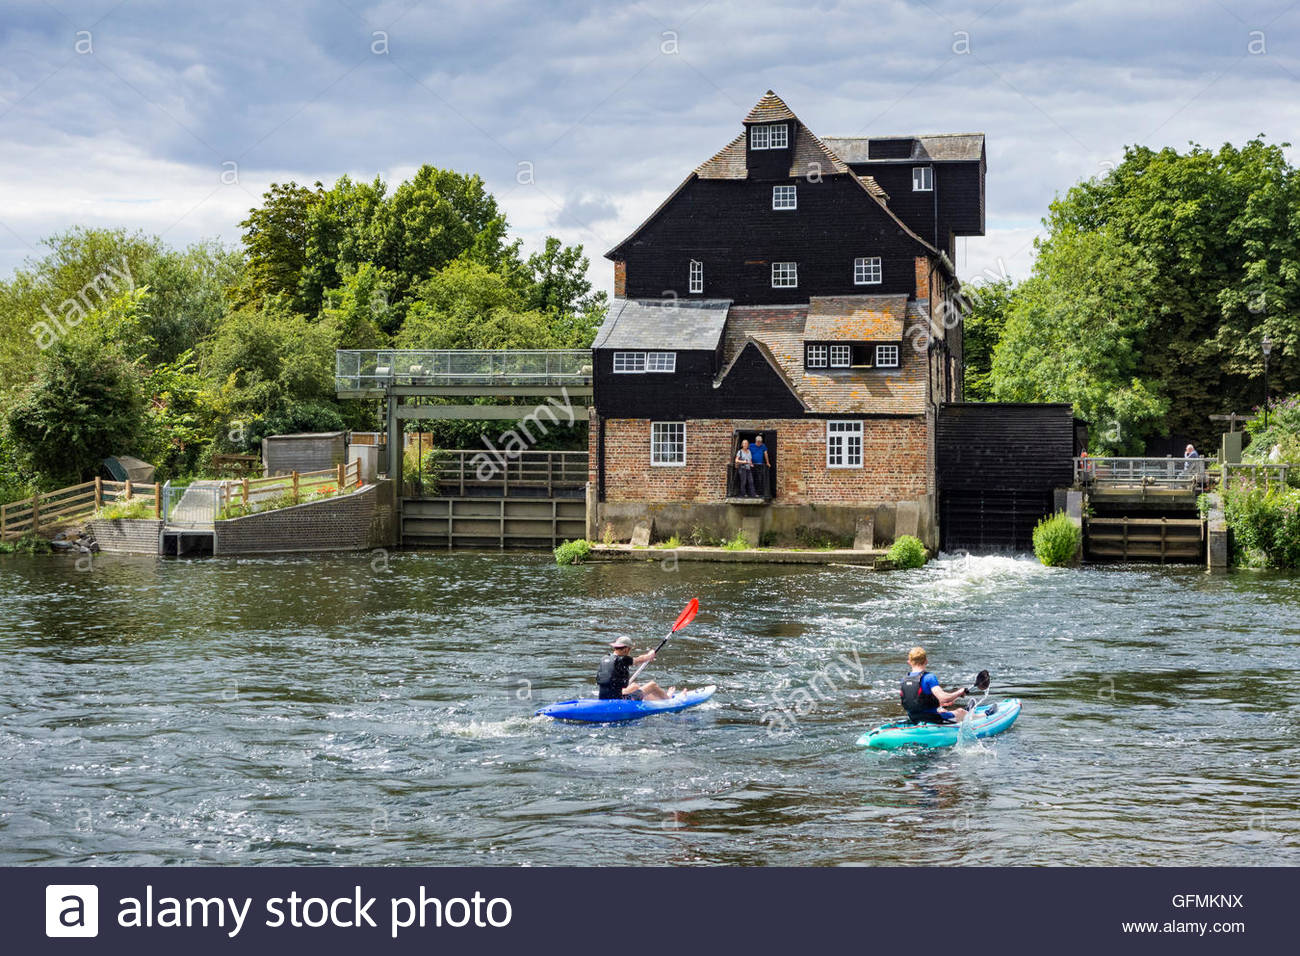 Houghton, Cambridgeshire, UK. 31st July, 2016. Kayakers on the River Great Ouse by  Houghton Water Mill in Cambridgeshire, - Stock Image